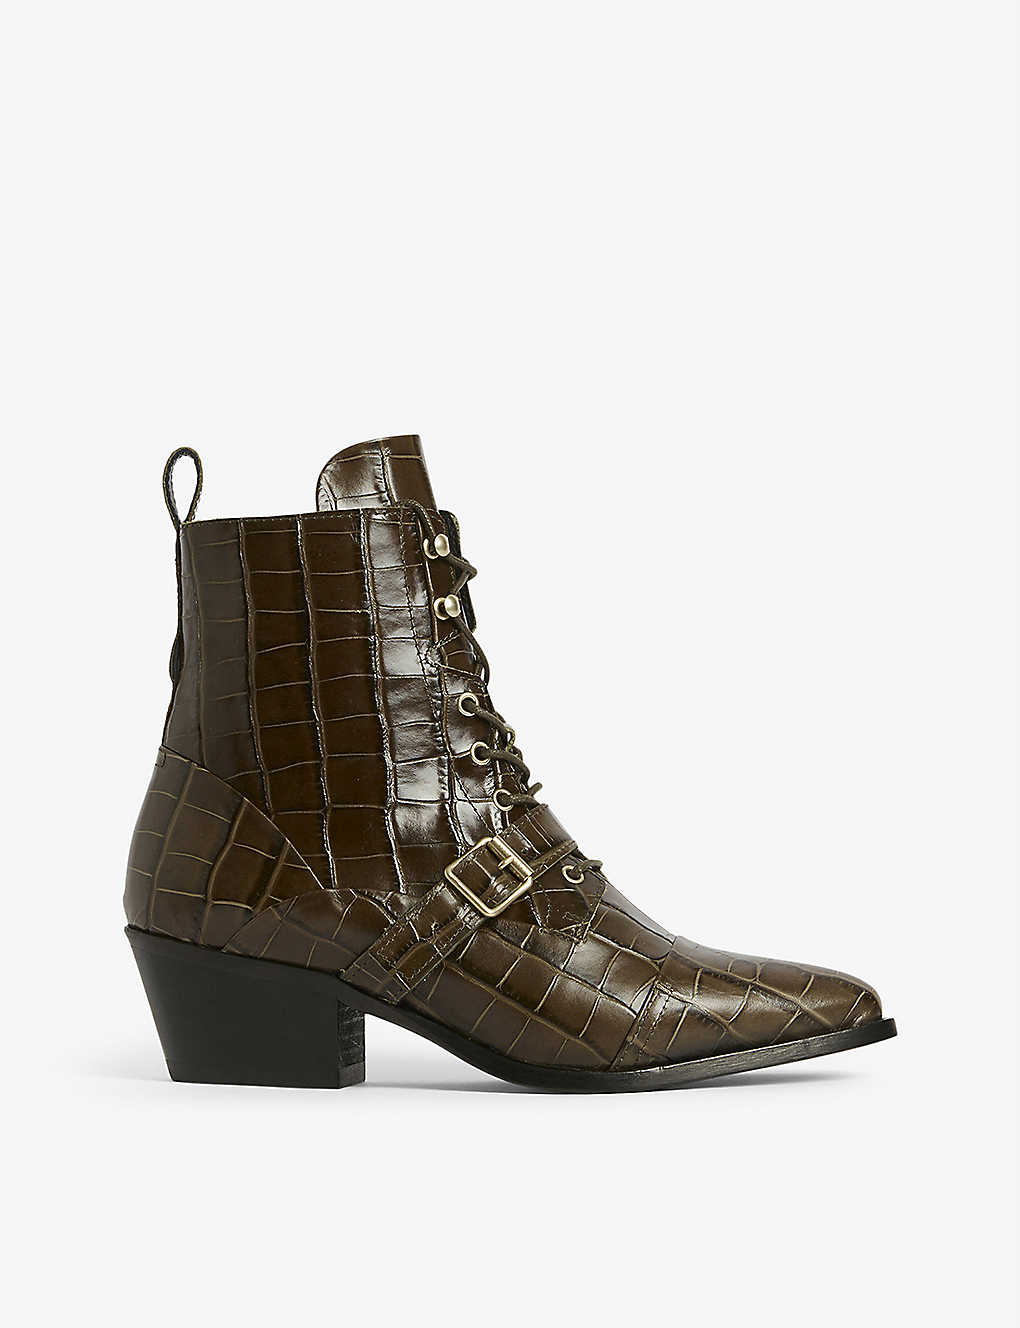 ALLSAINTS: Katy croc-effect leather ankle boots